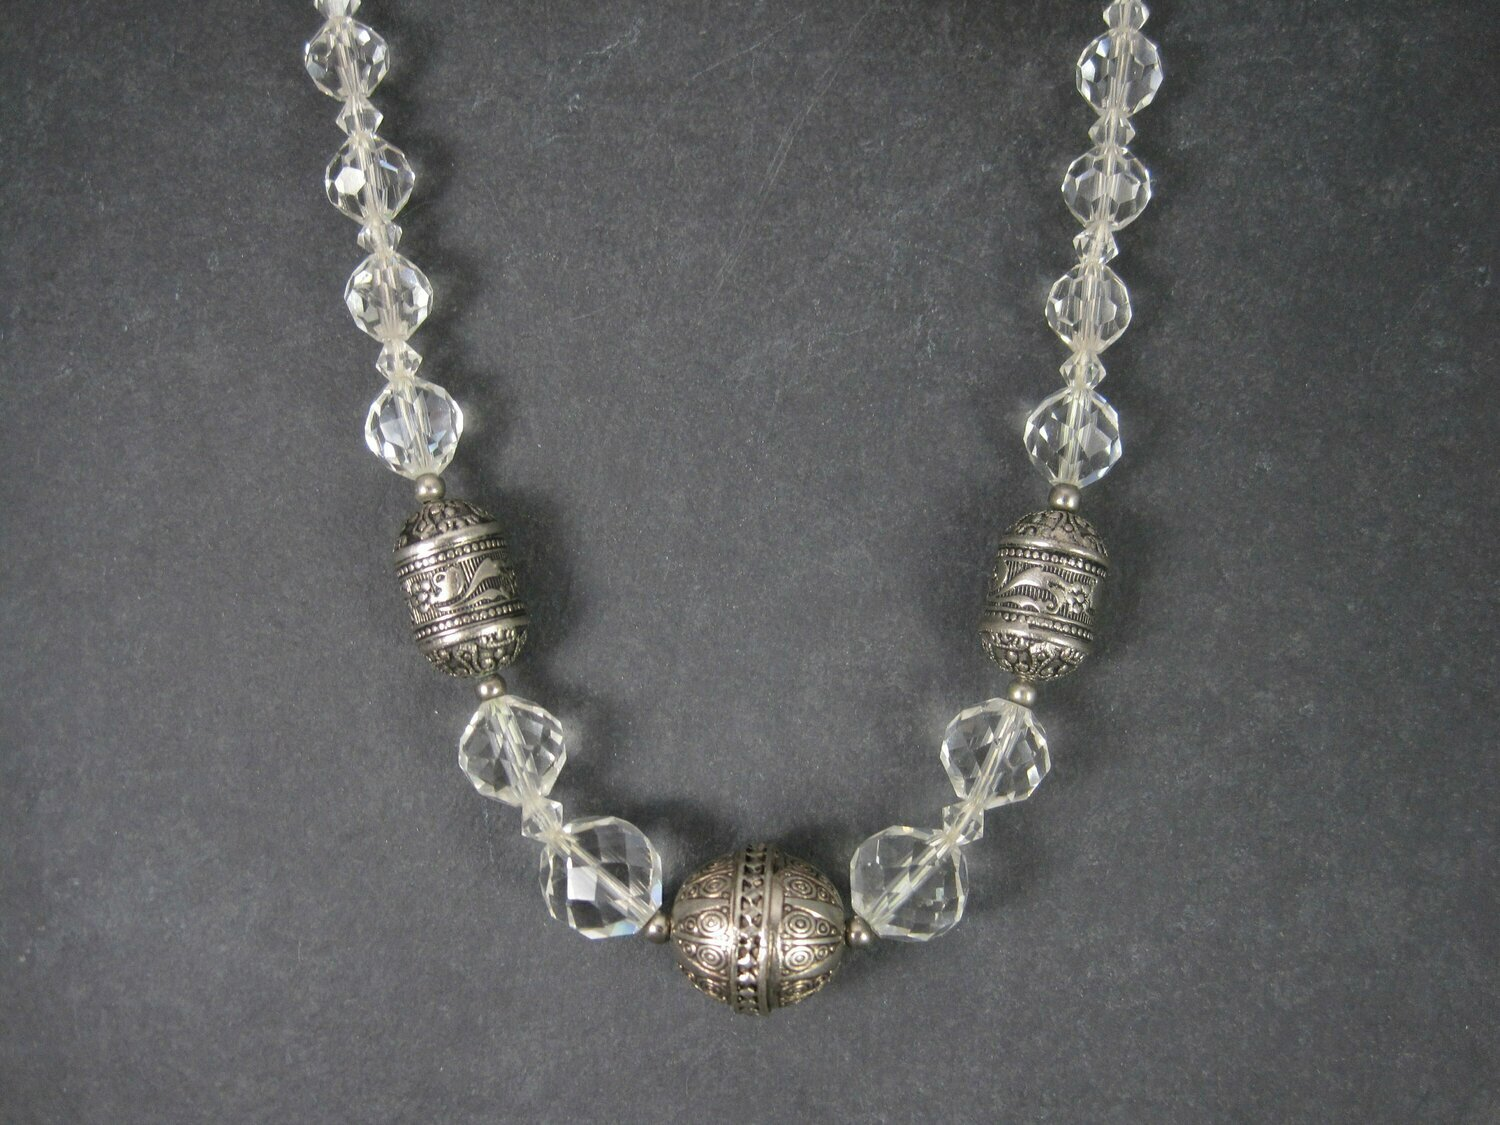 Vintage Sterling Czech Glass Faceted Bead Necklace